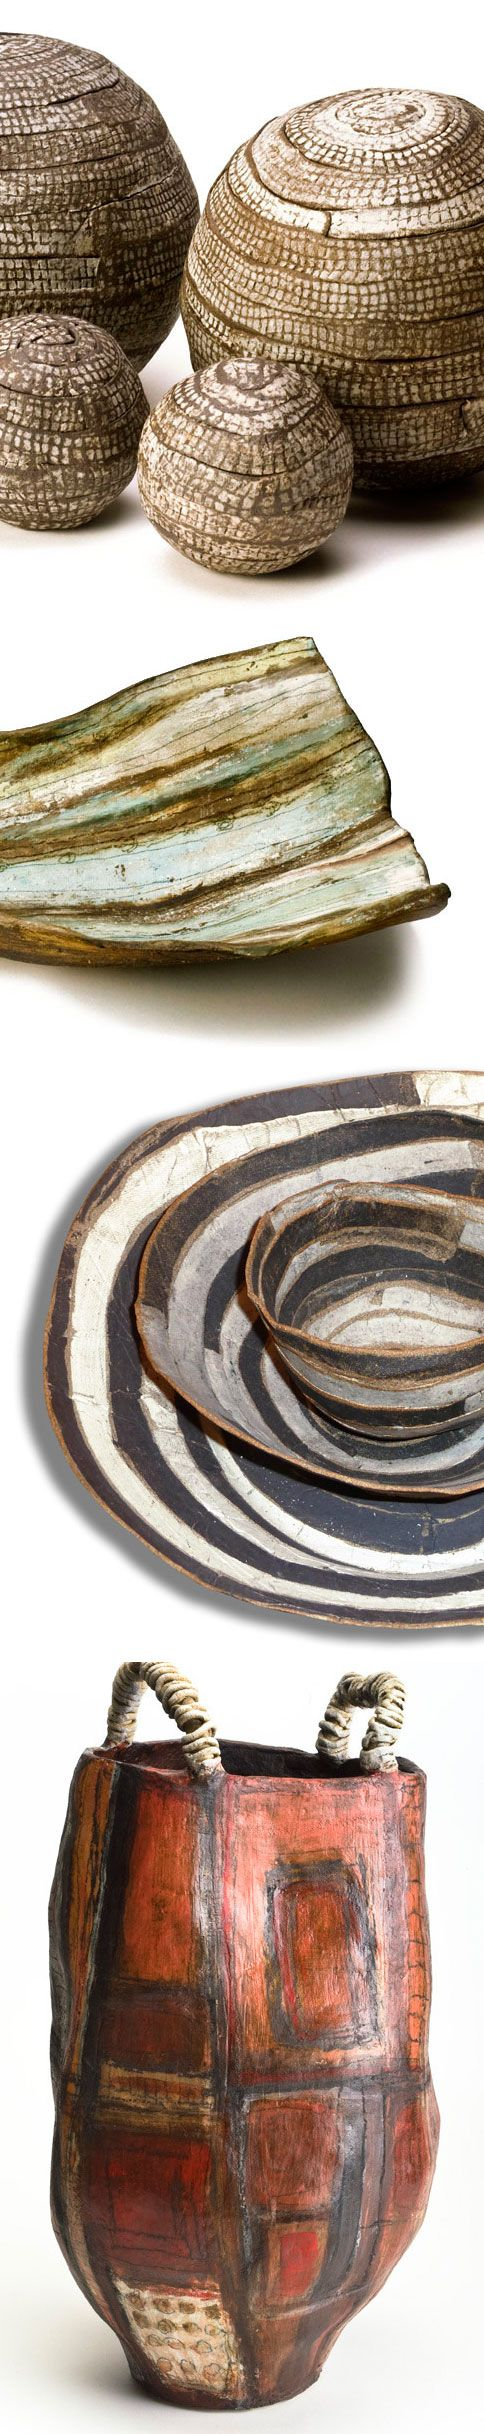 """Brenda Holzke is """"a commercial ceramic product designer trapped in a fine artists soul""""."""